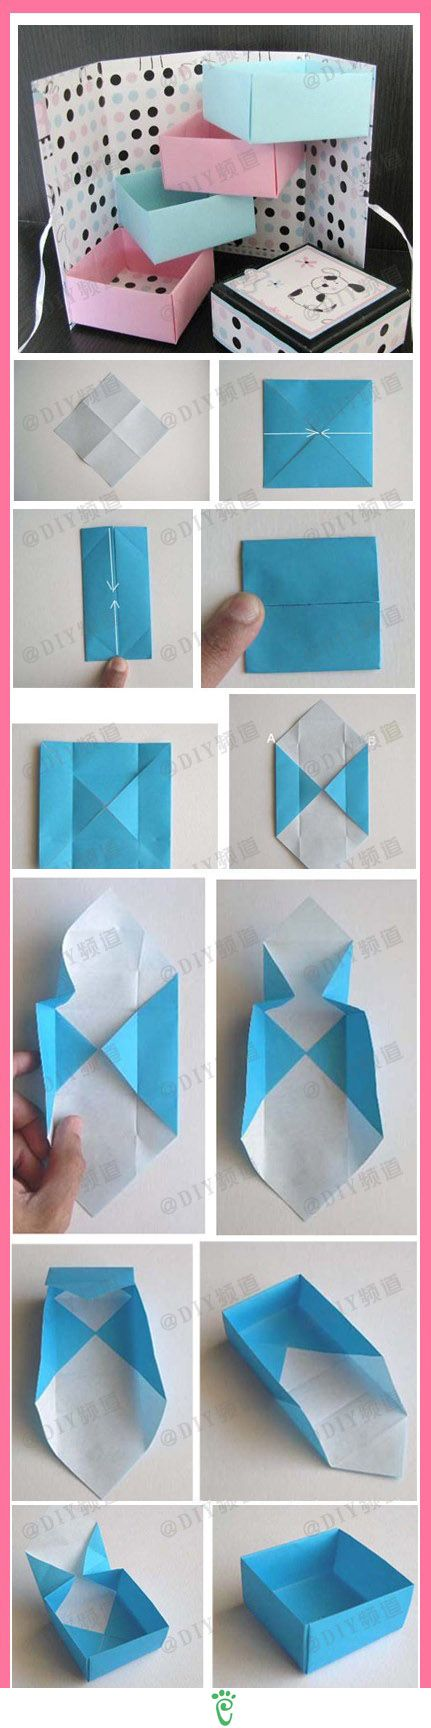 DIY Paper Box diy craft crafts easy crafts craft idea diy ideas home diy easy diy home crafts diy craft